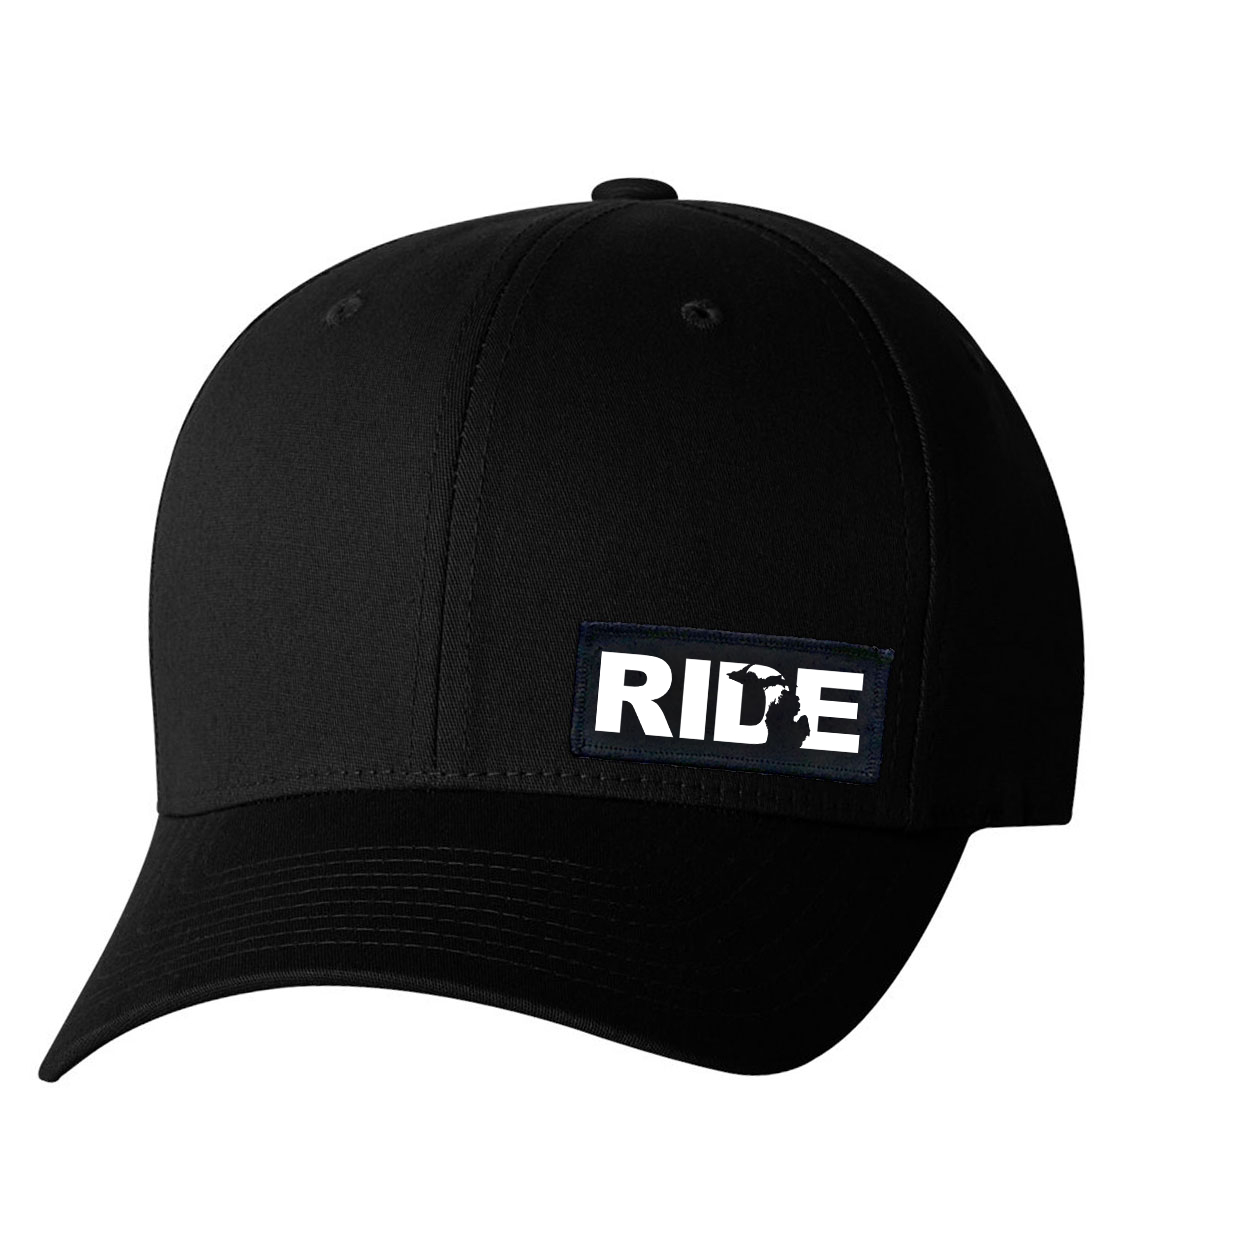 Ride Michigan Night Out Woven Patch Flex-Fit Hat Black (White Logo)